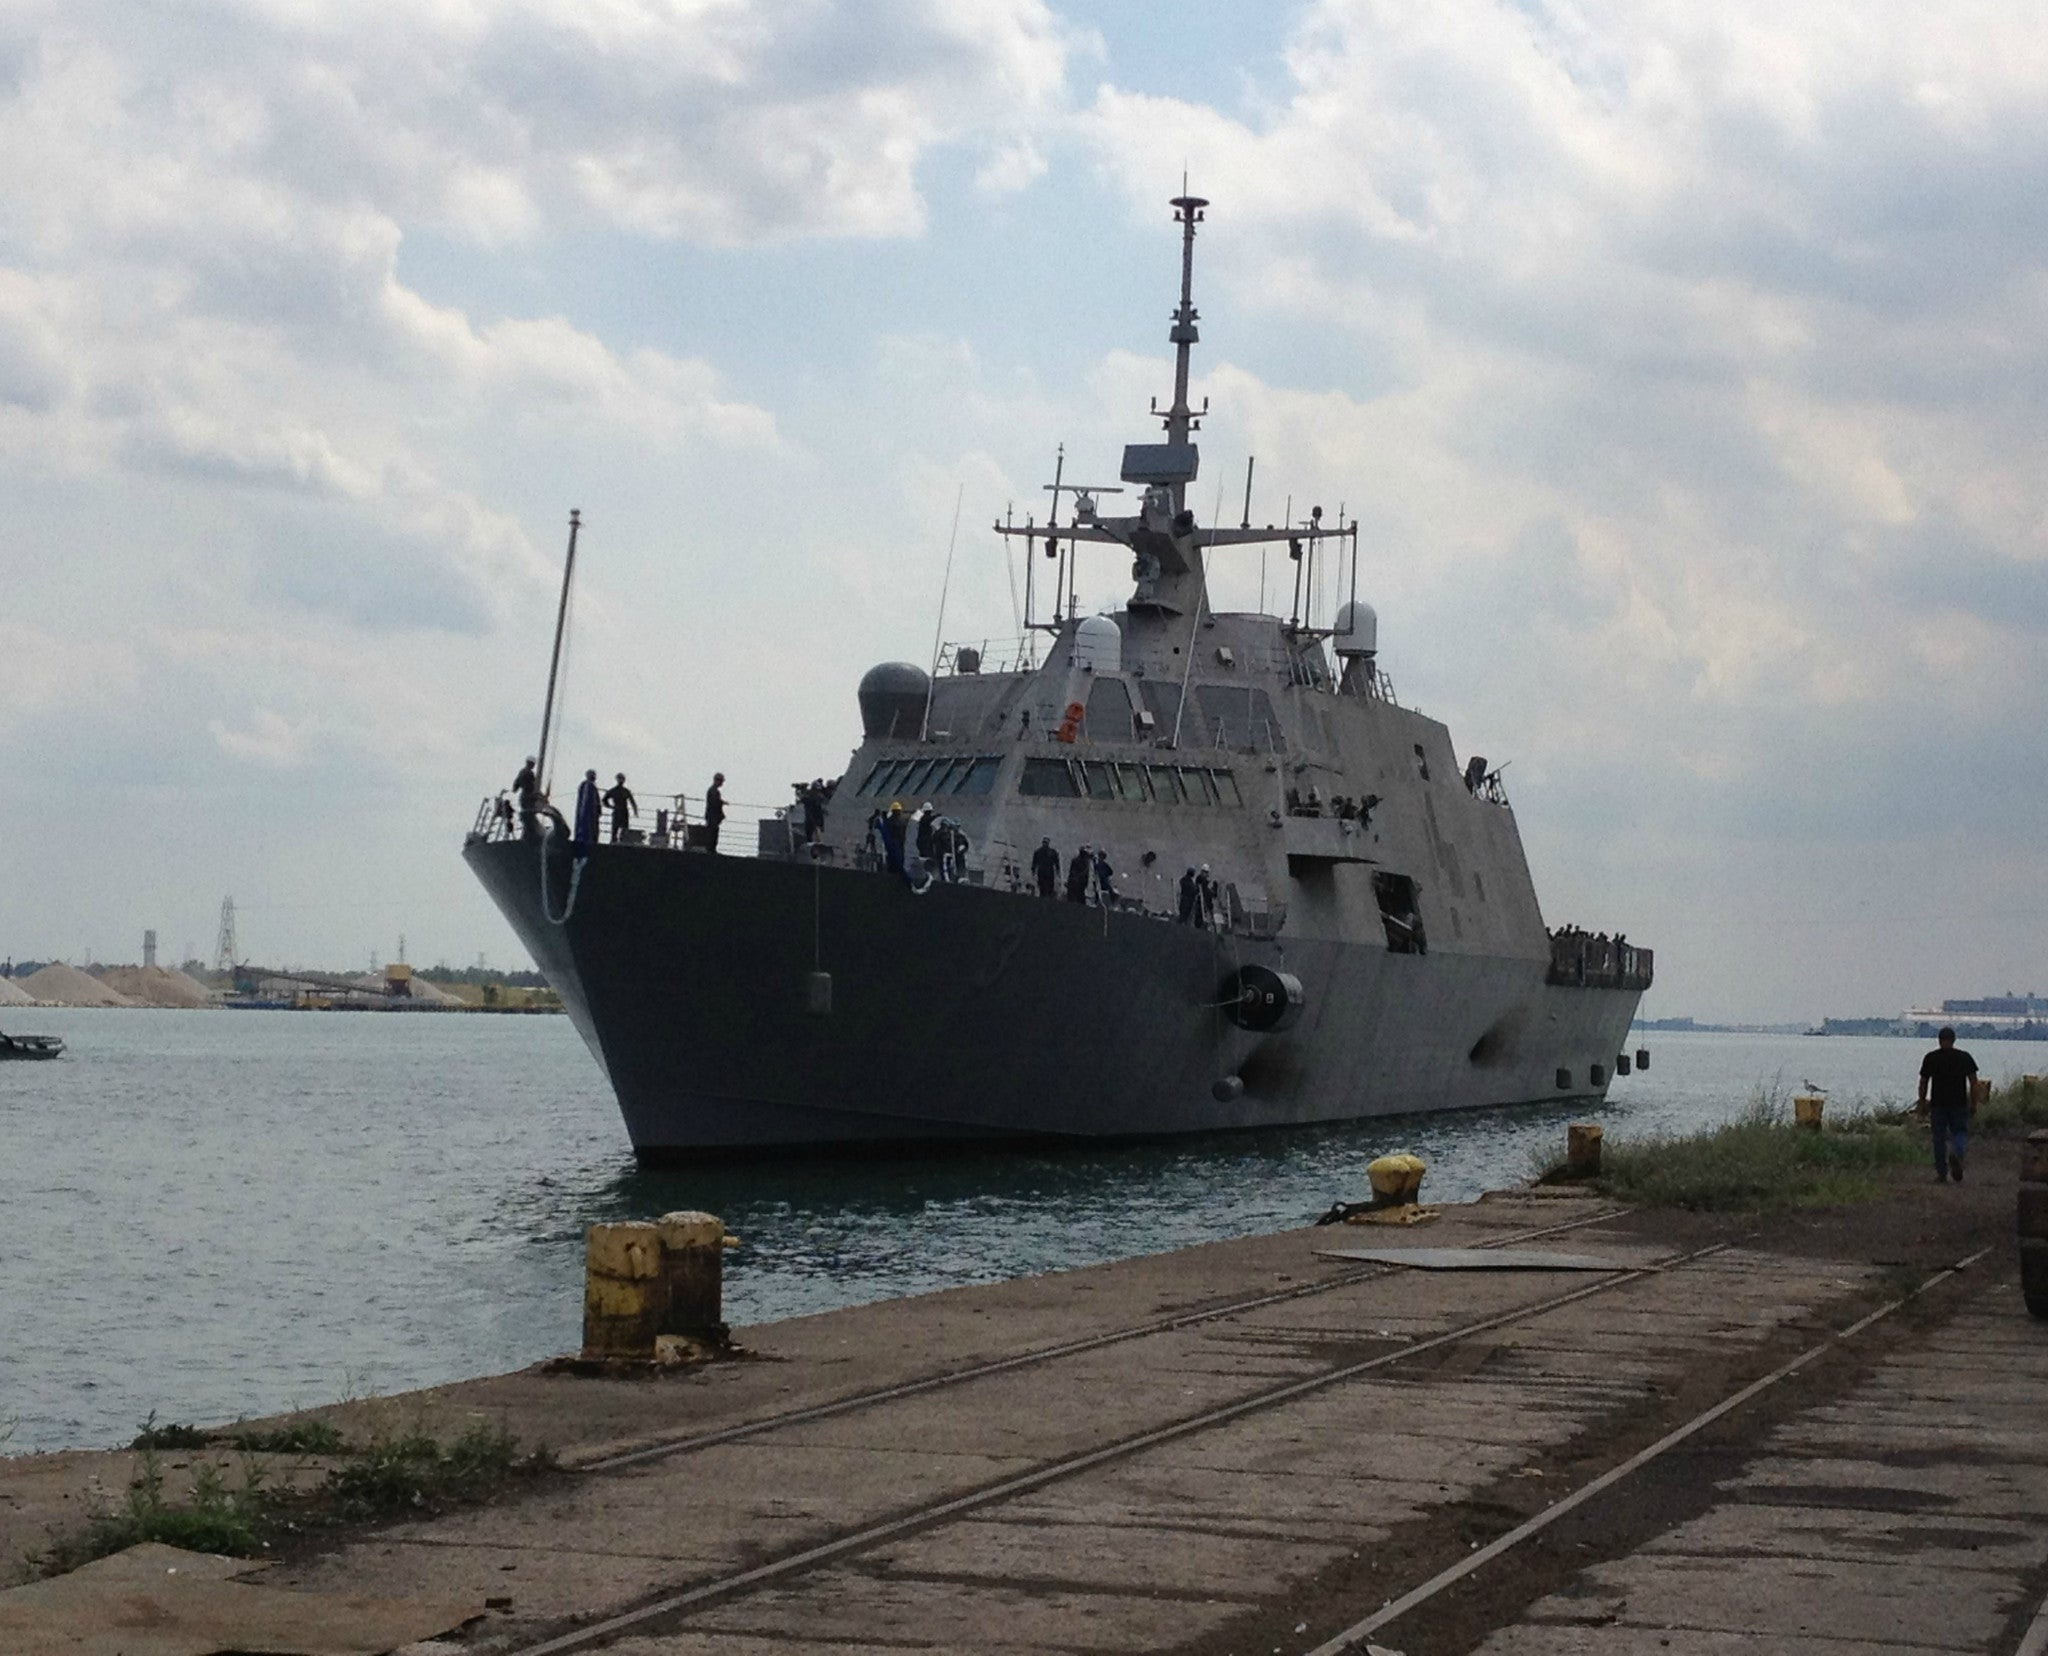 "Littoral Combat Ship USS Fort Worth LCS-3 Detroit, Michigan August 8, 2012 - 8 x 10"" Photograph"